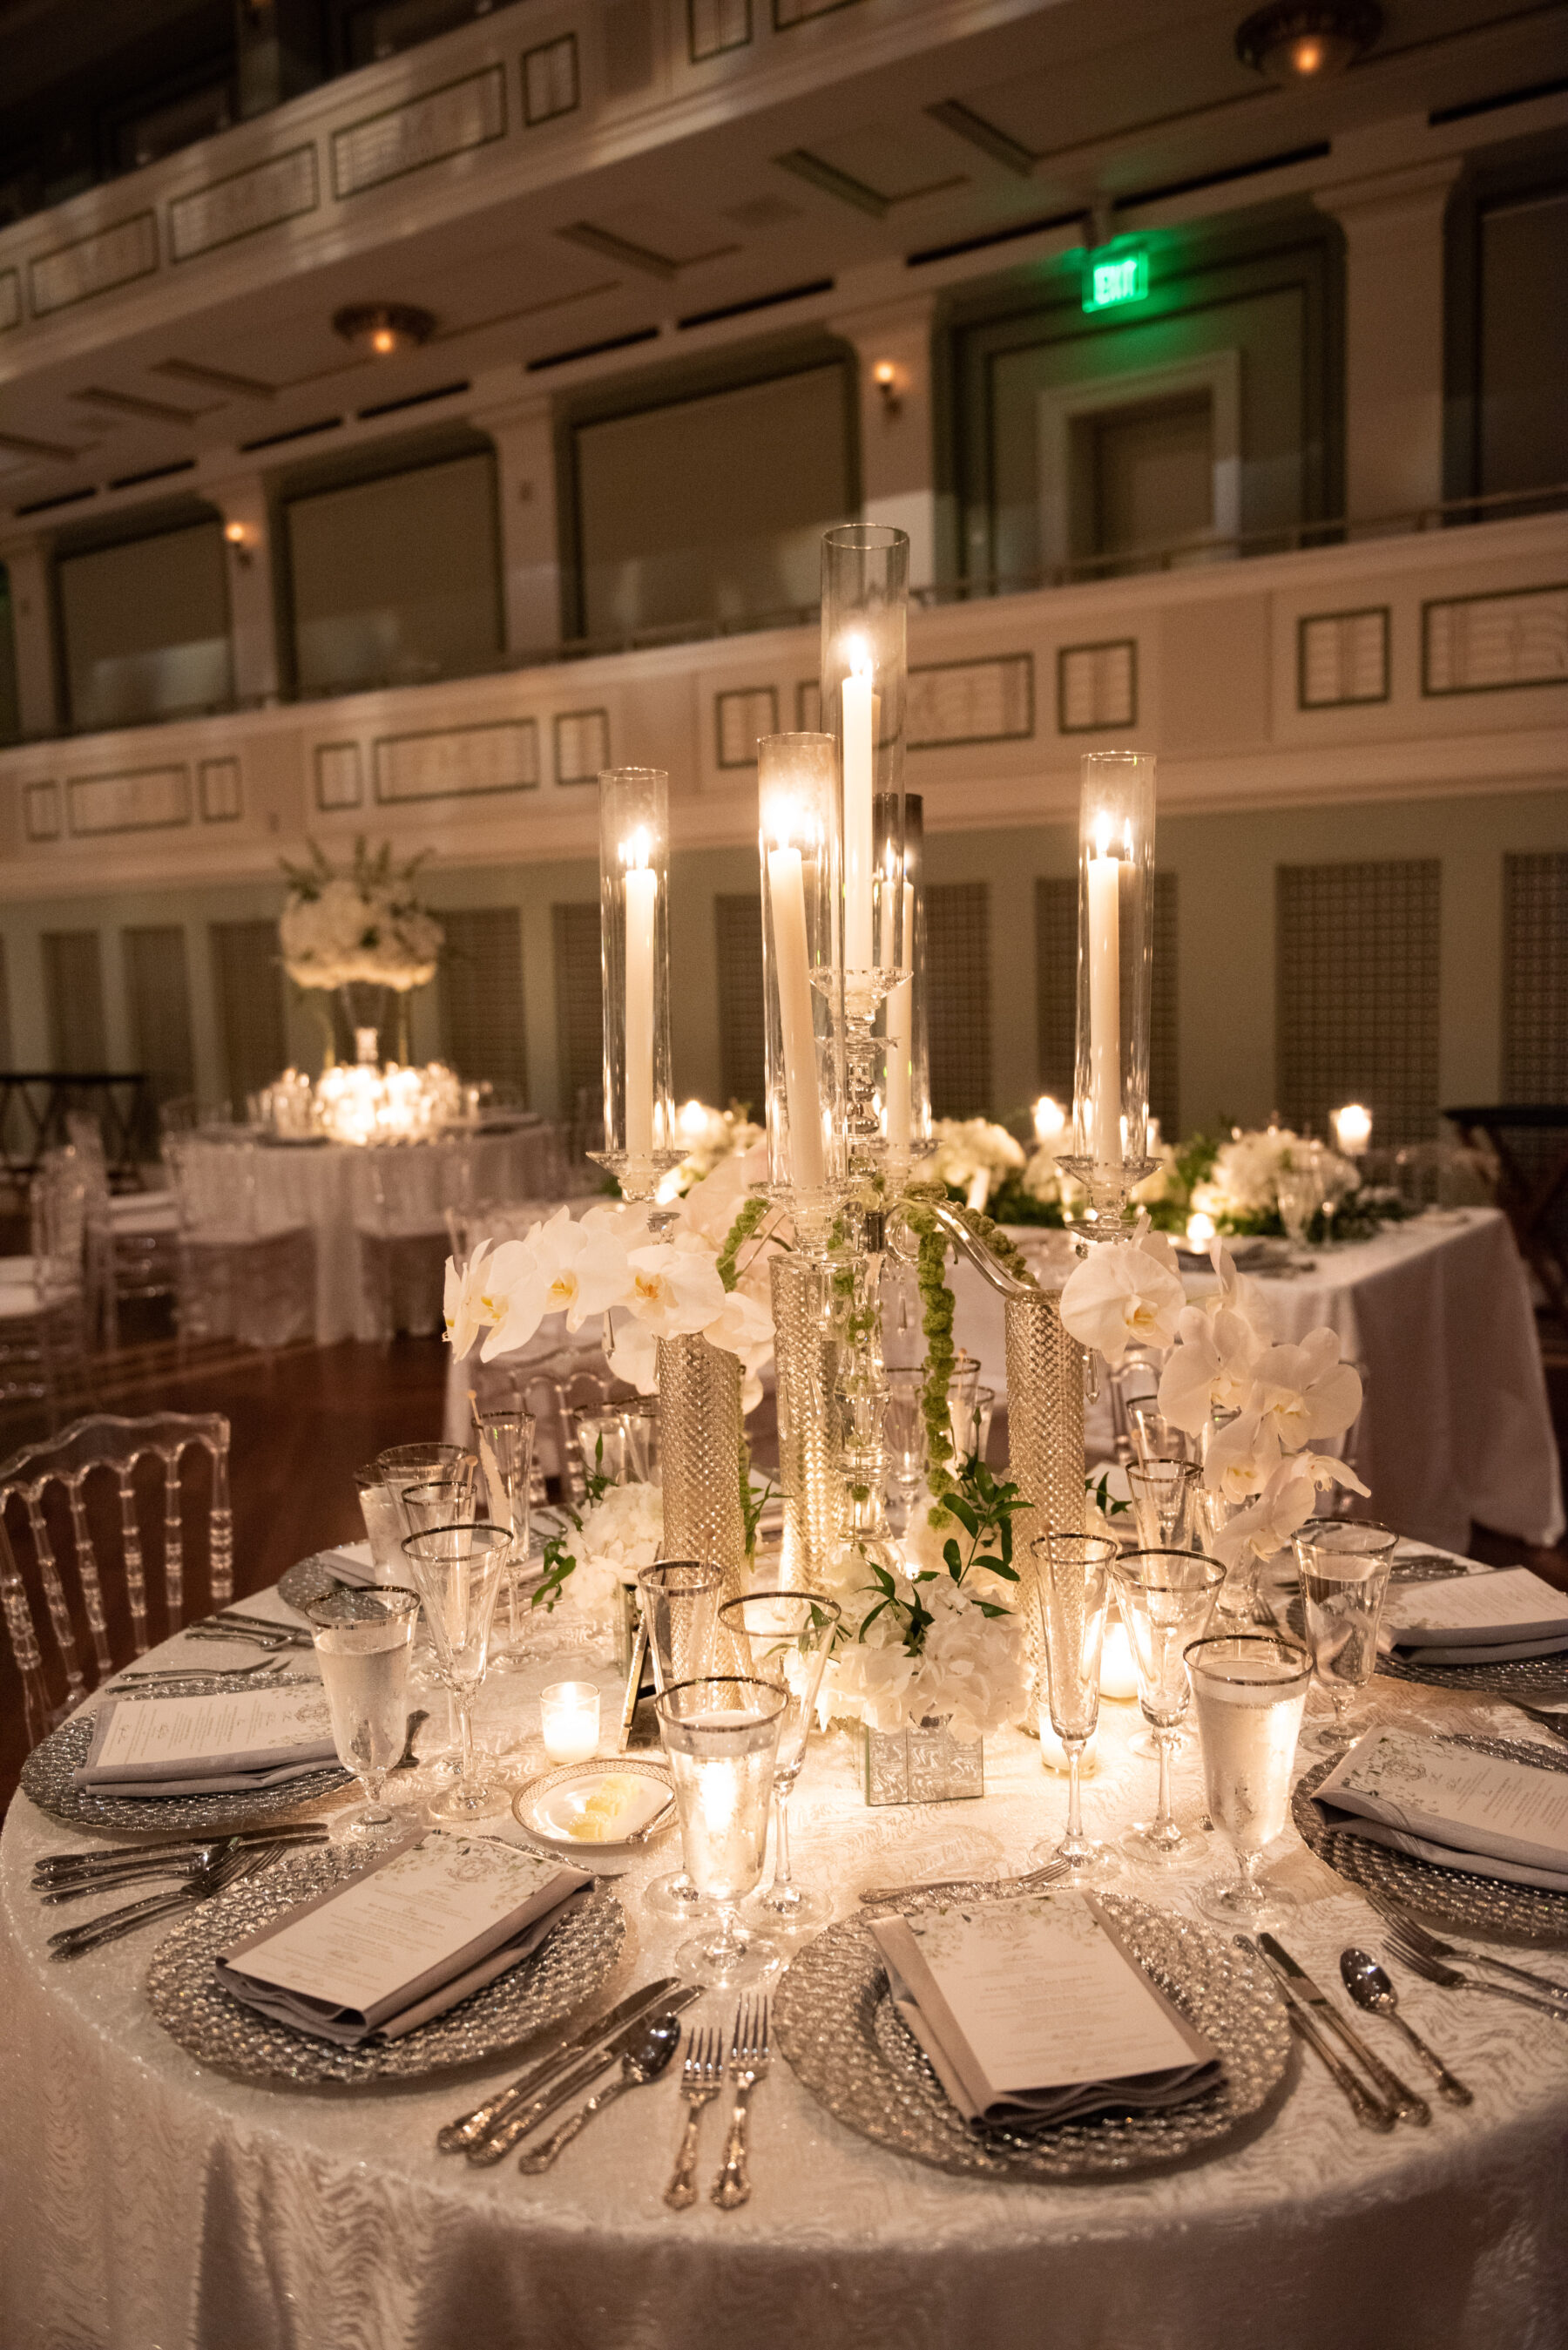 Elevated candlelight wedding centerpieces: Floral Filled Luxurious Wedding by LMA Designs featured on Nashville Bride Guide